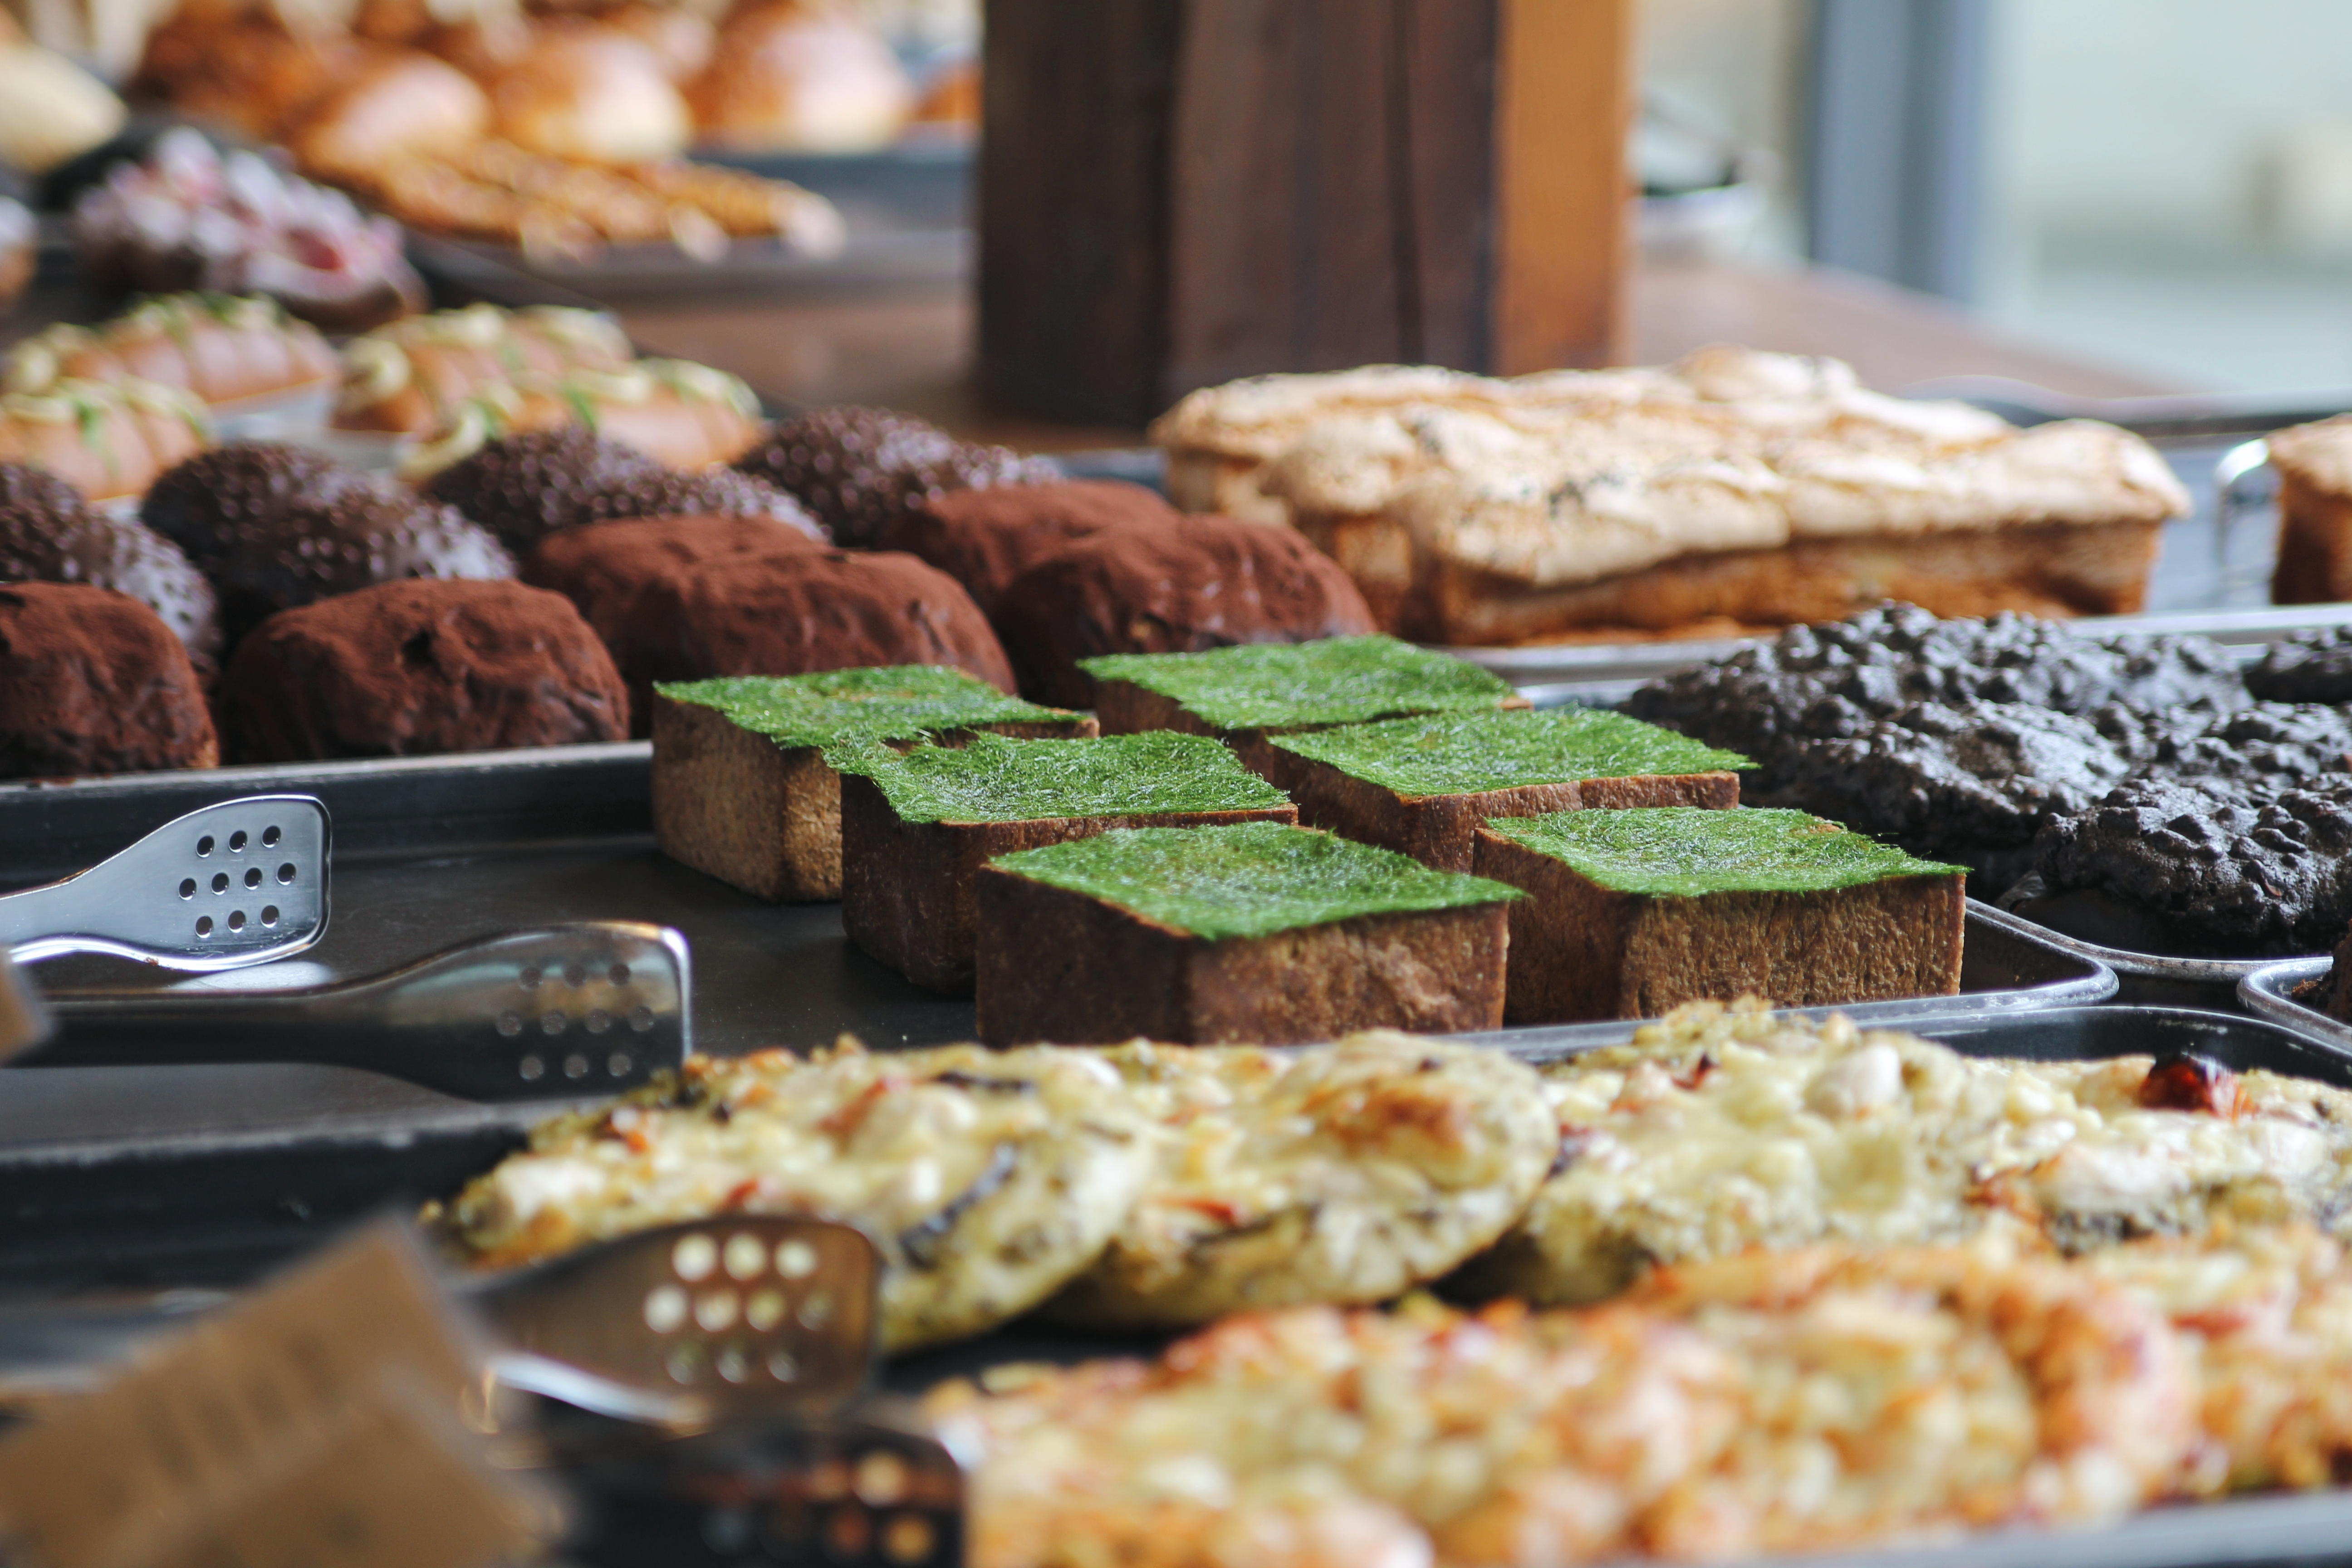 A variety of pastries at Onion. The seaweed fulvescens + Gamtae (seaweed) with honey is in focus, but it is surrounded by a variety of other pastries.